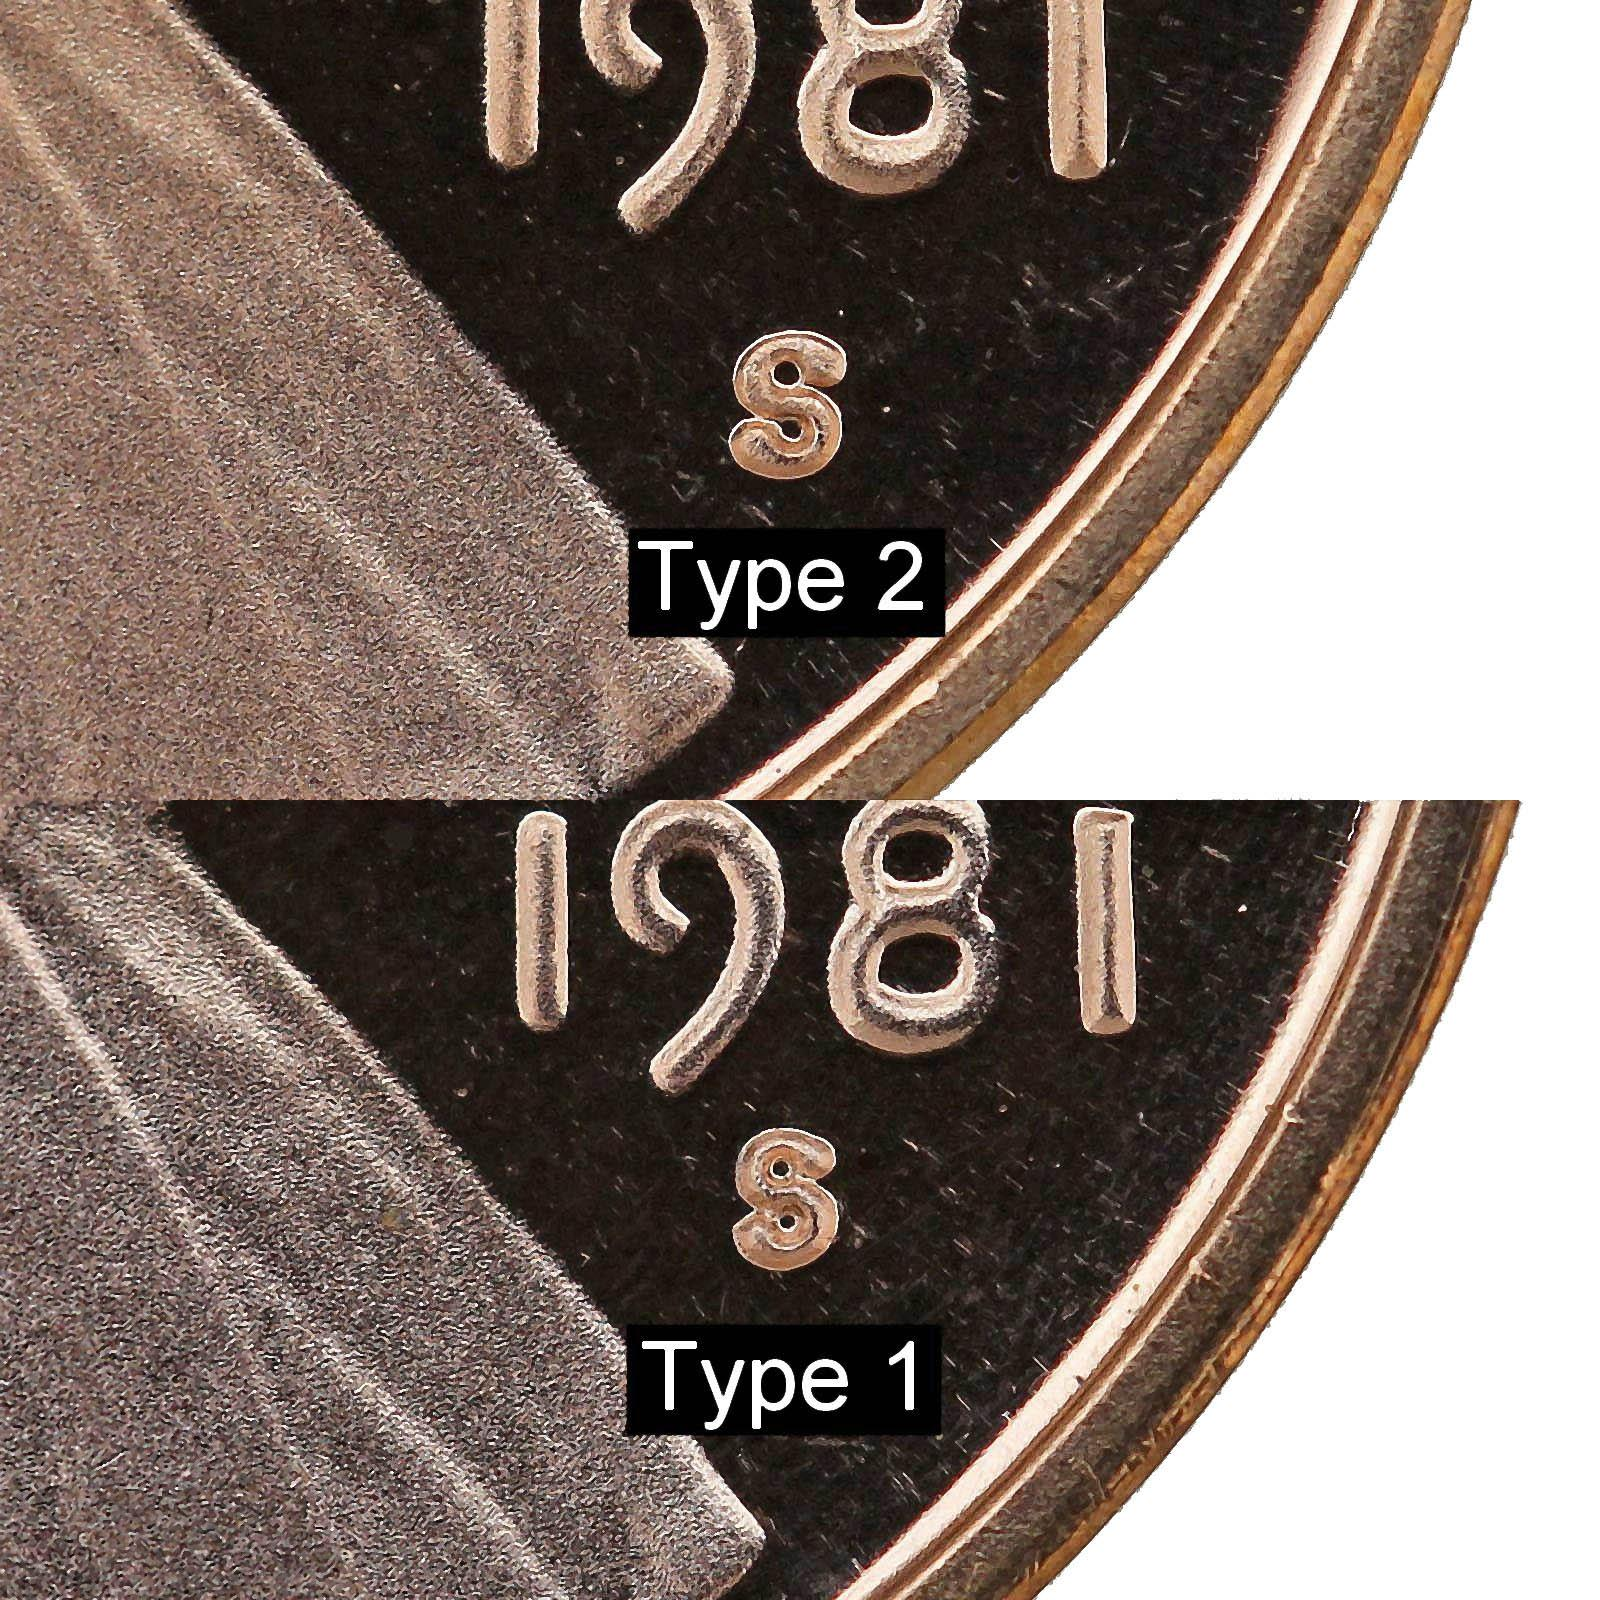 Details about 1981 S Lincoln Memorial Cent Type 1 Gem Deep Cameo Proof Penny